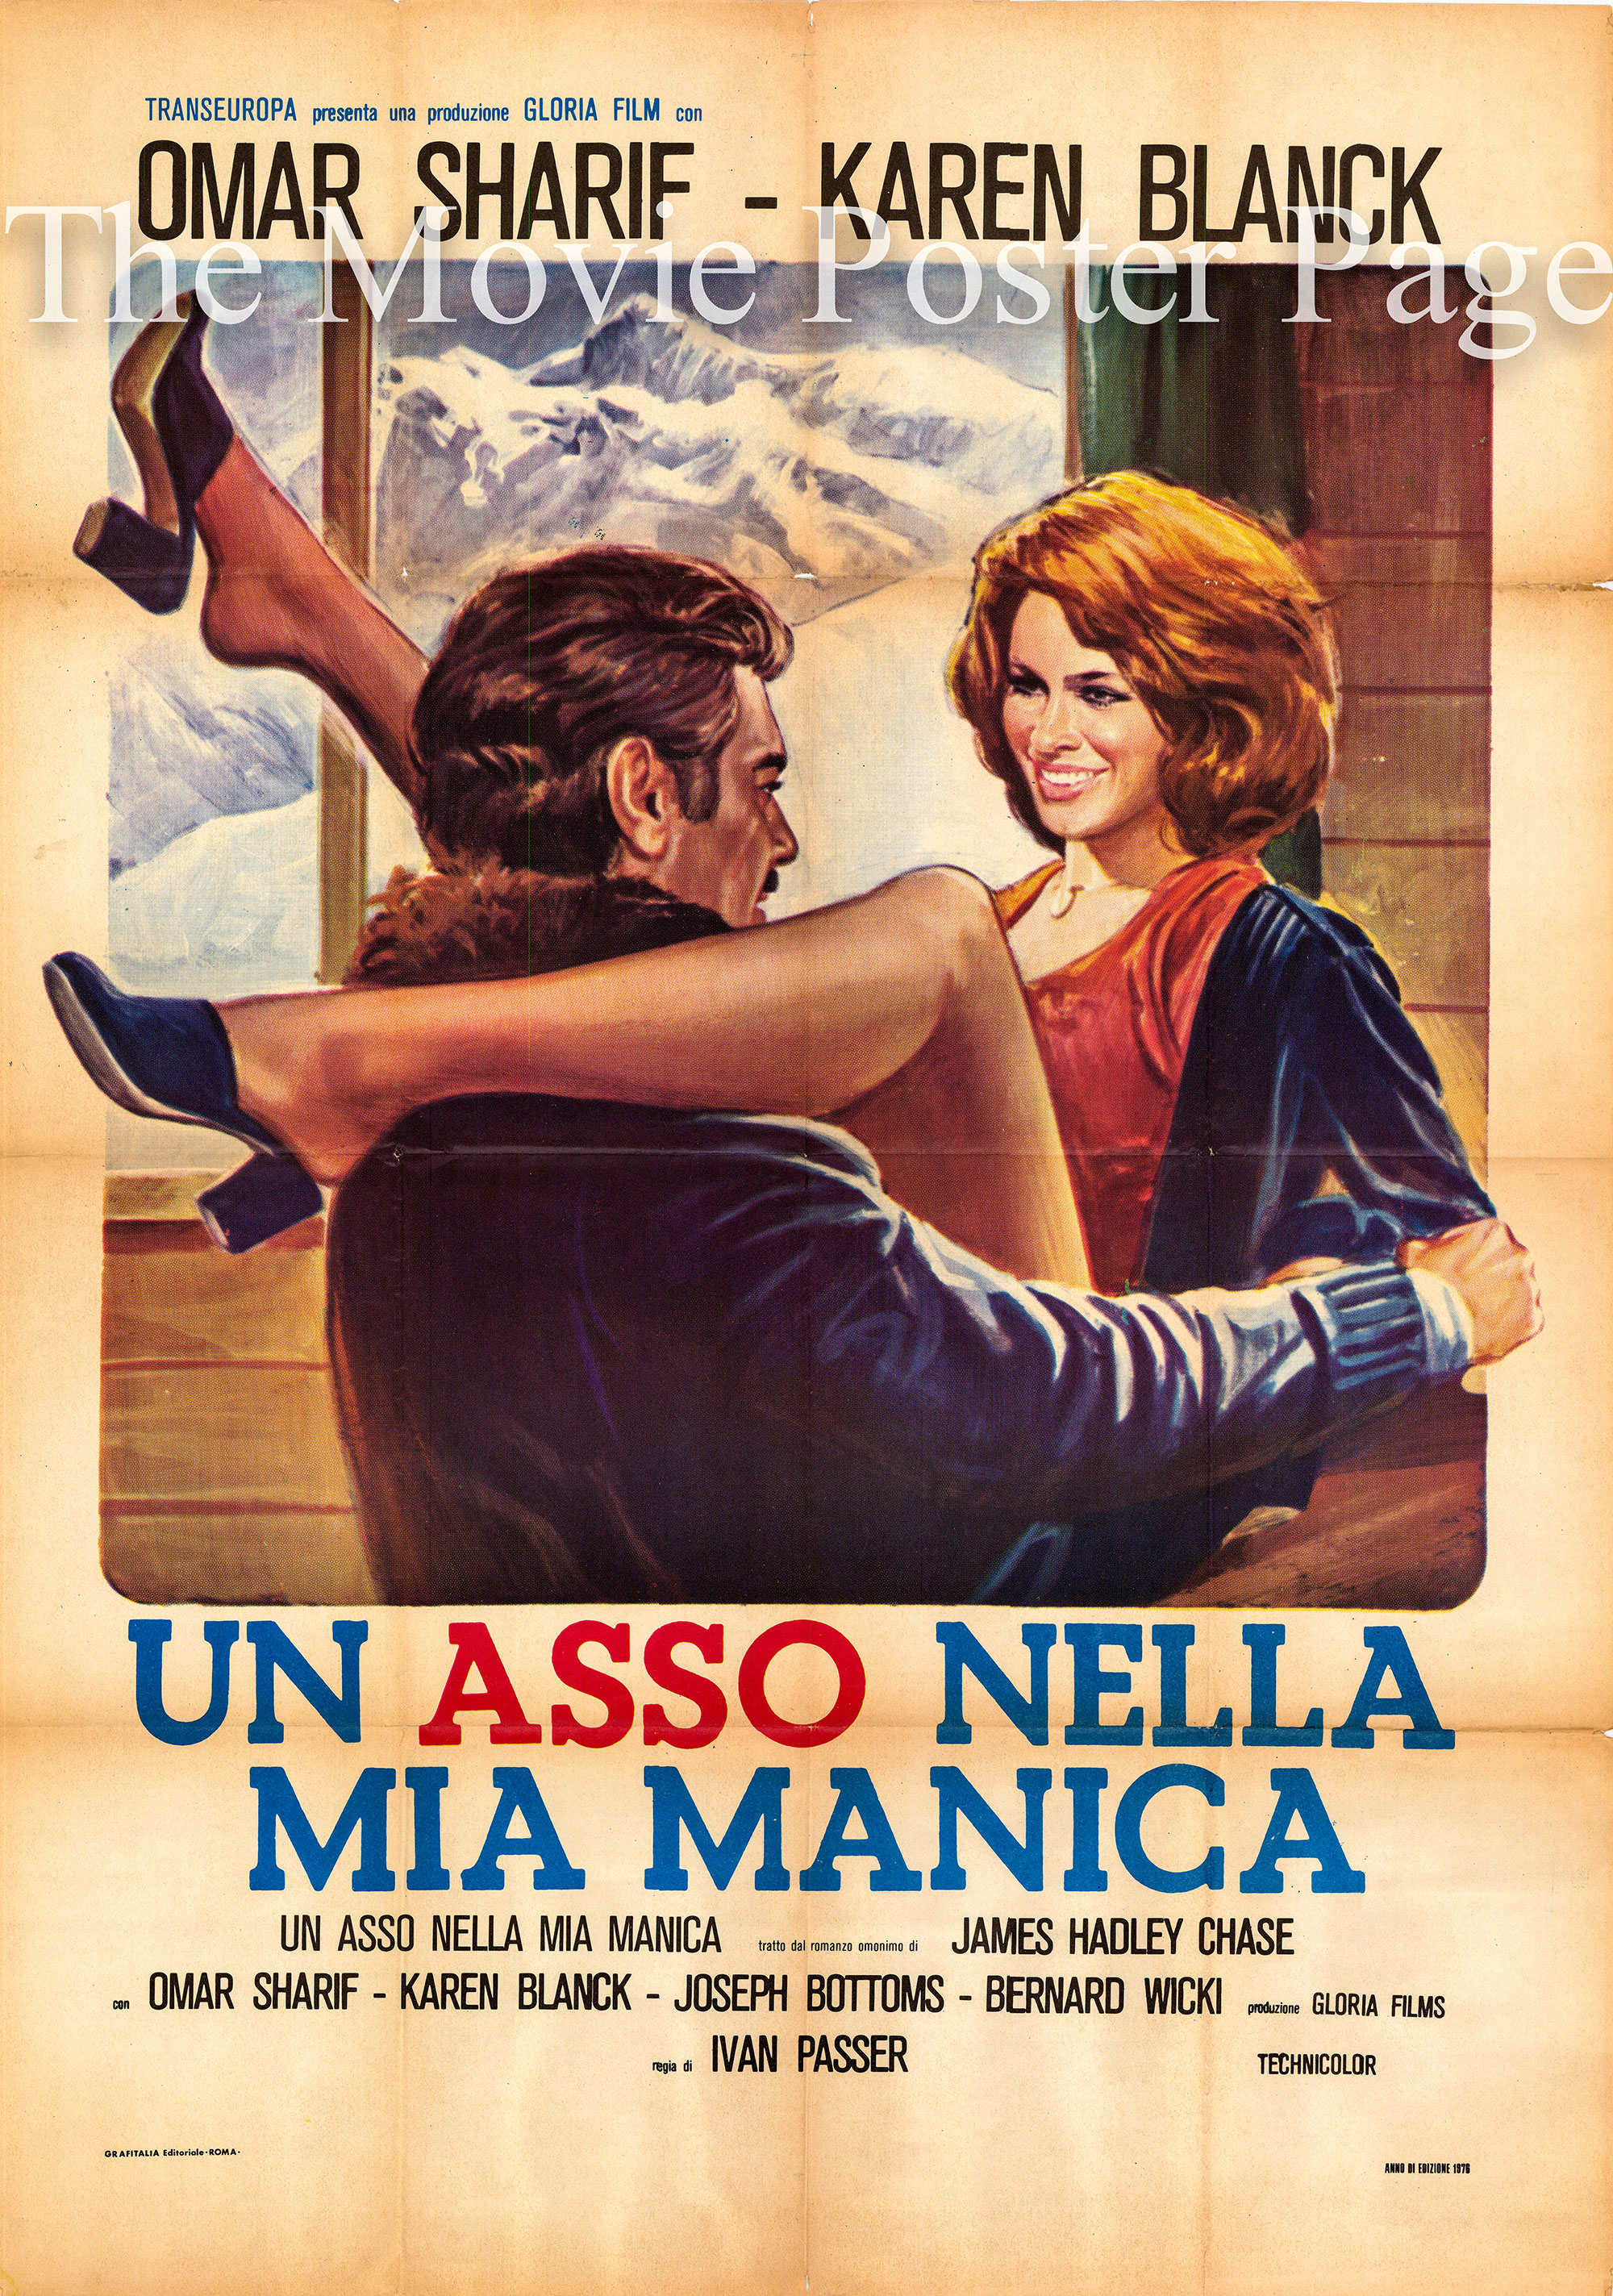 Pictured is an Italian two-sheet promotional poster for the 1976 Ivan Passer film Crime and Passion, starring Omar Sharif and Karen Black.